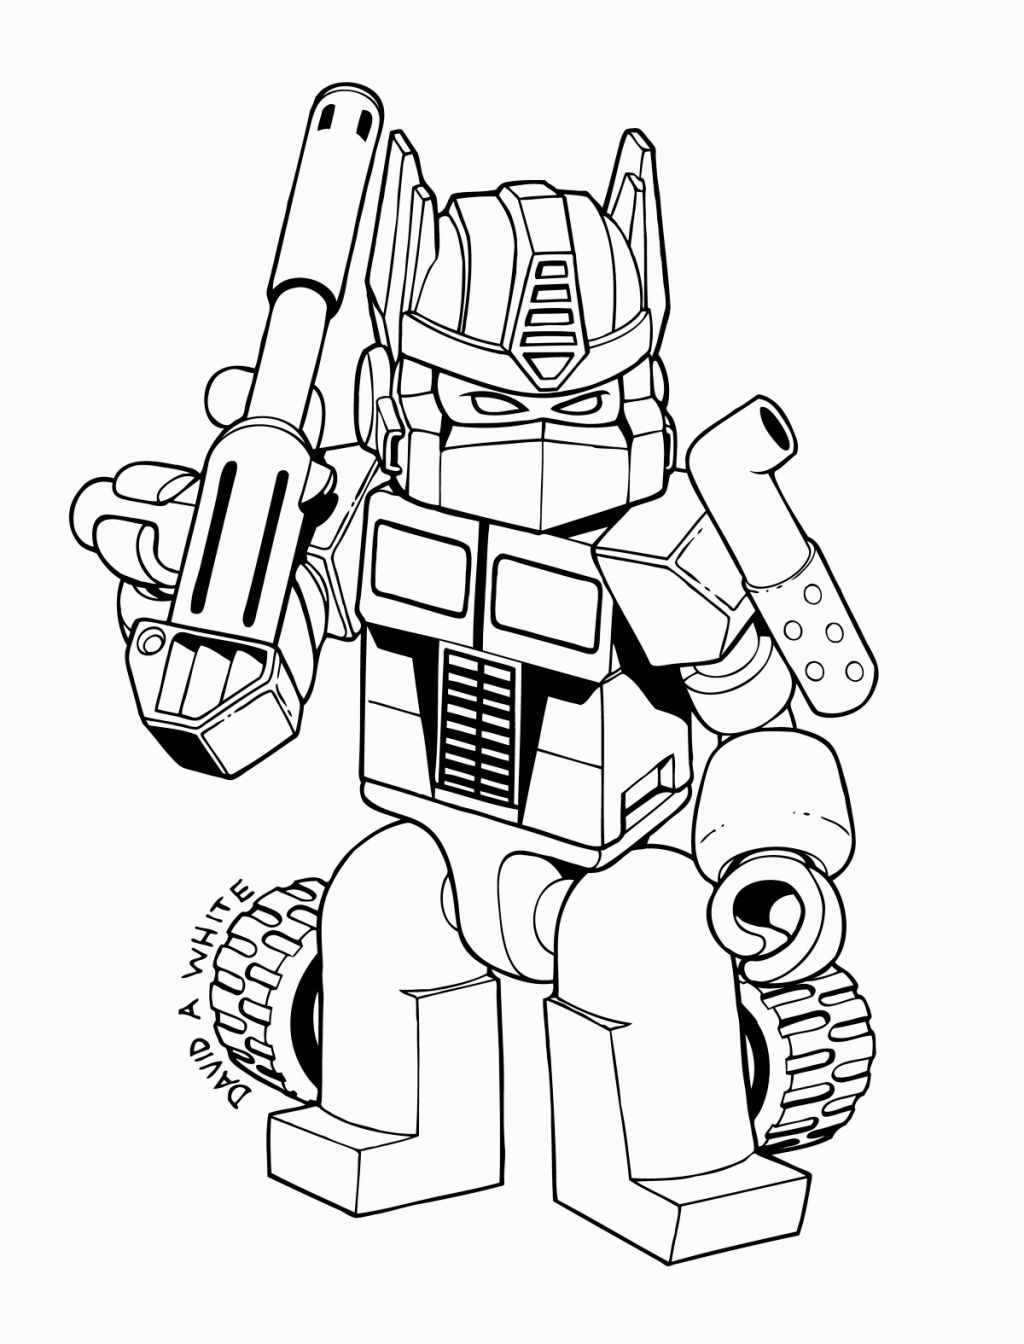 Transformer Coloring Pages | Coloring Pages | Pinterest | Coloring books